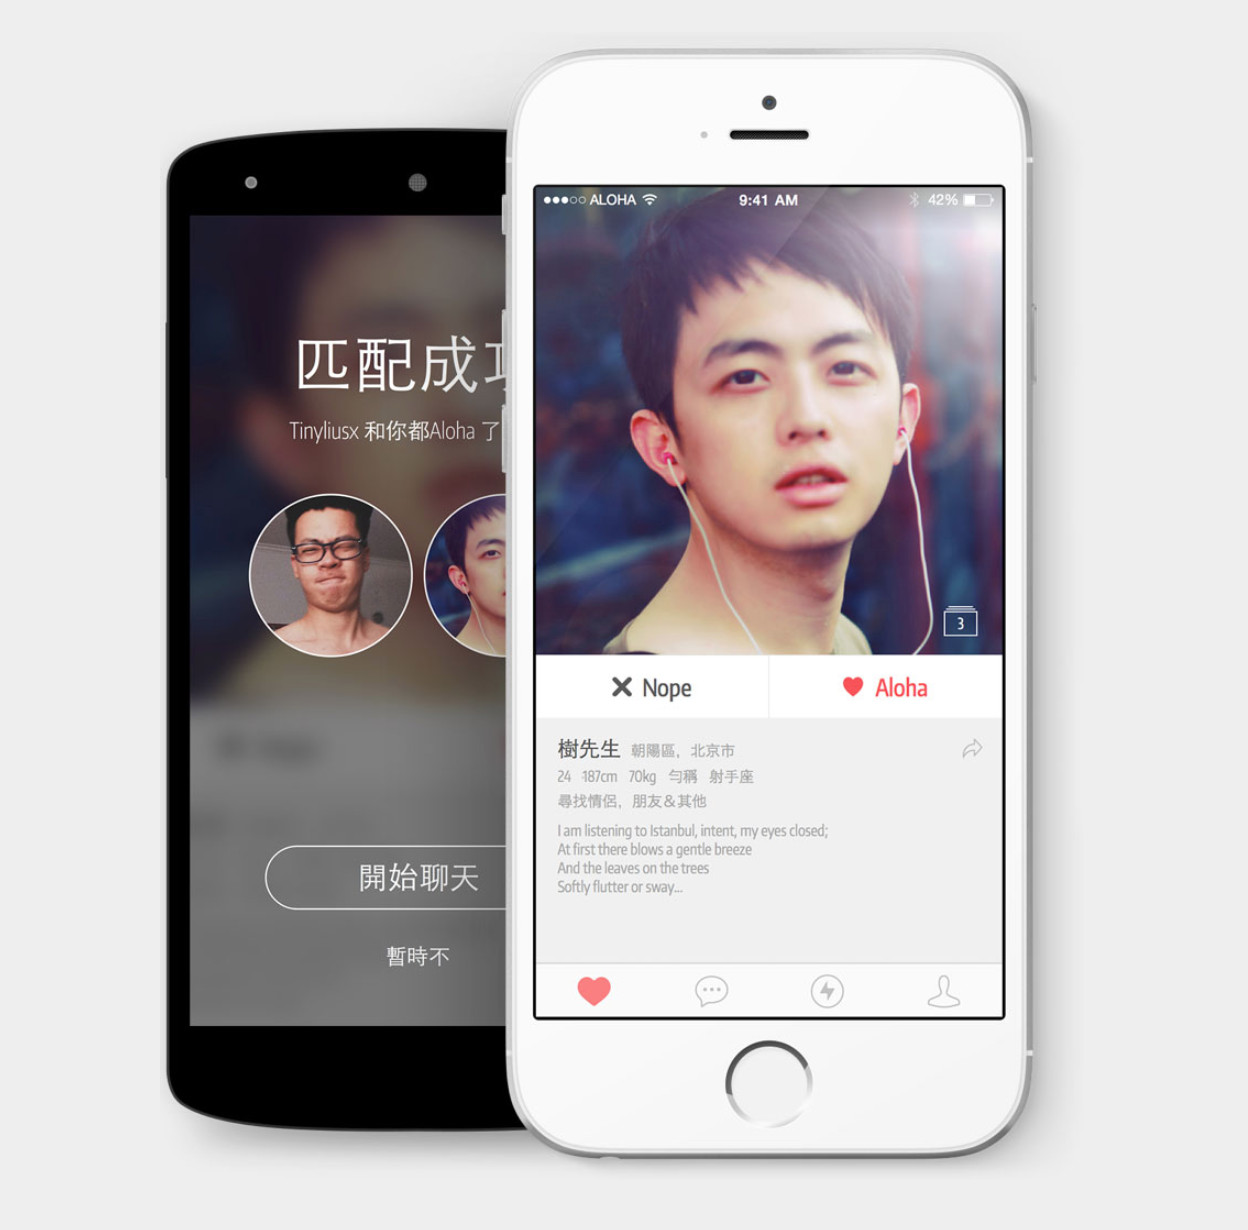 Taiwan gay dating app